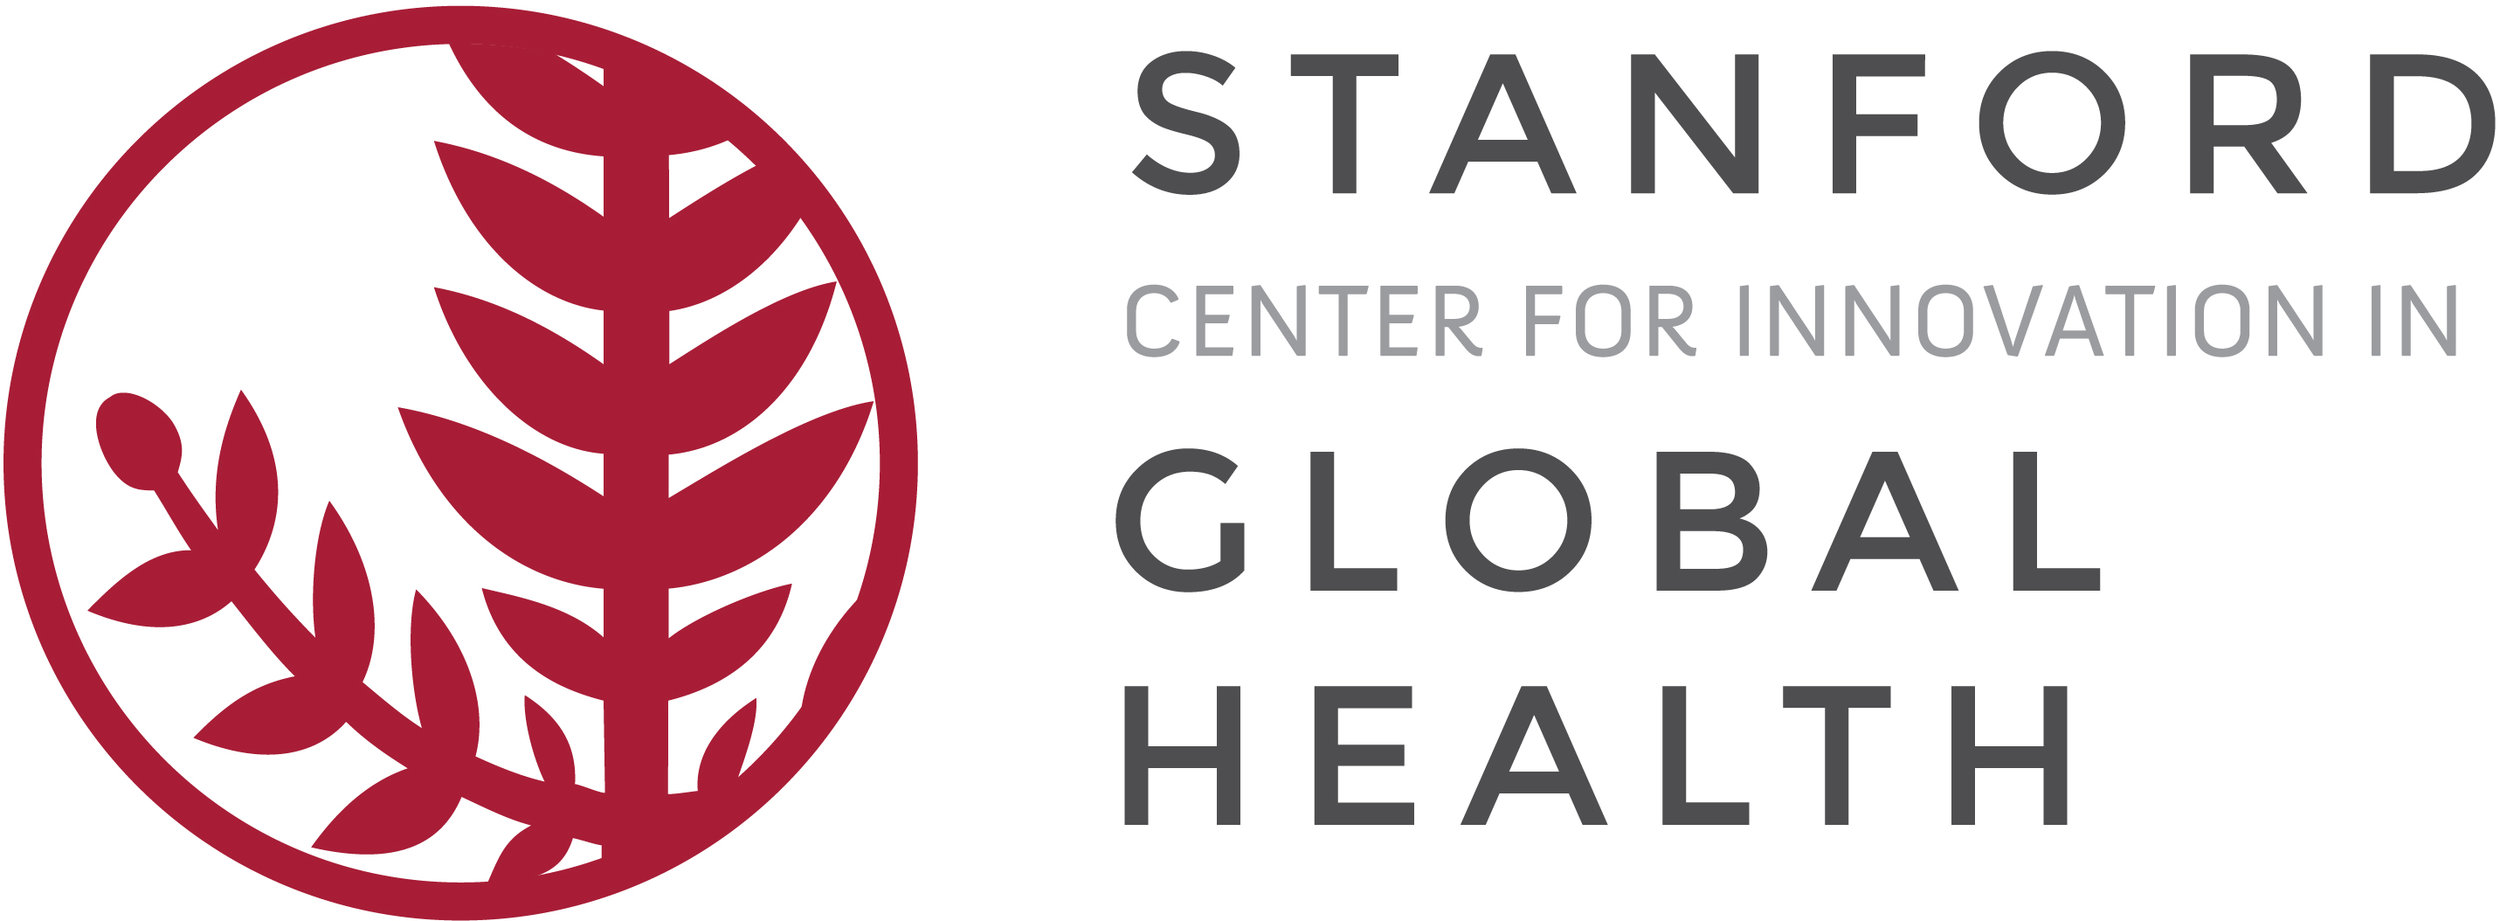 Stanford-Global-Health.jpg